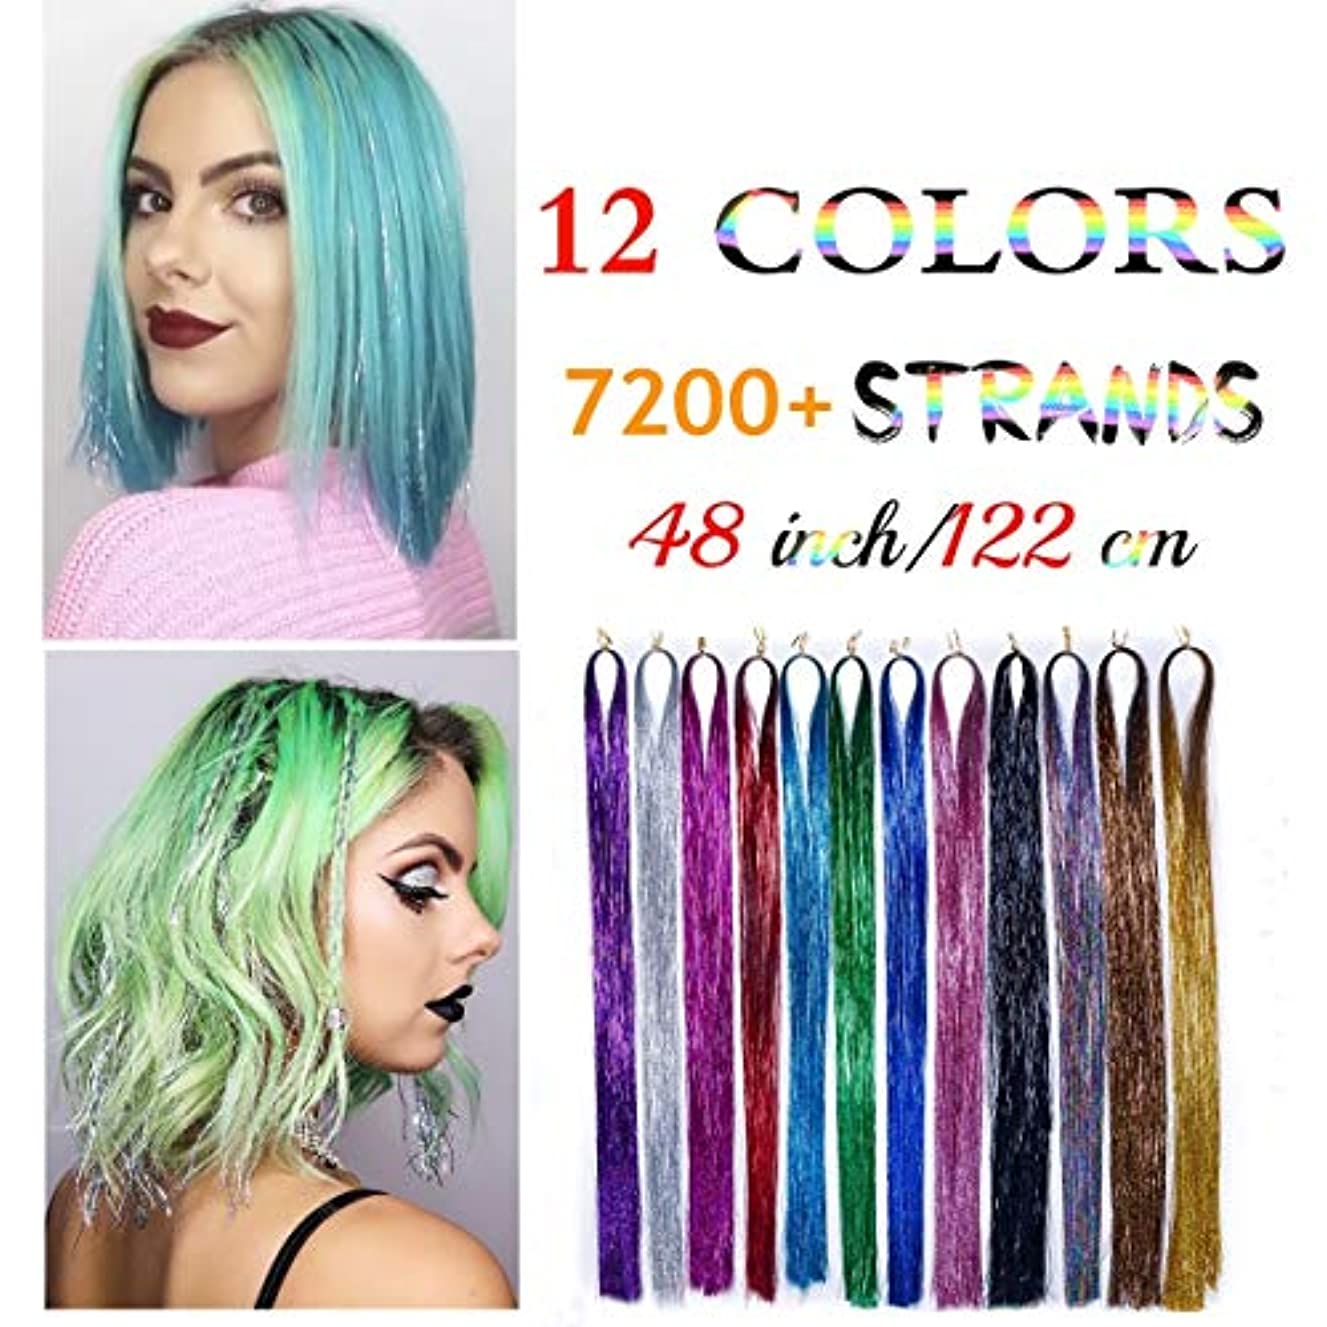 48 Inch 7200+ Strands Hair Tinsel,12 Colors Sparkling Shiny Hair Tinsel Fairy Hair Glitter In Extension Dazzle Multi Colors Part Party Highlights Tinsel for Girls & Women